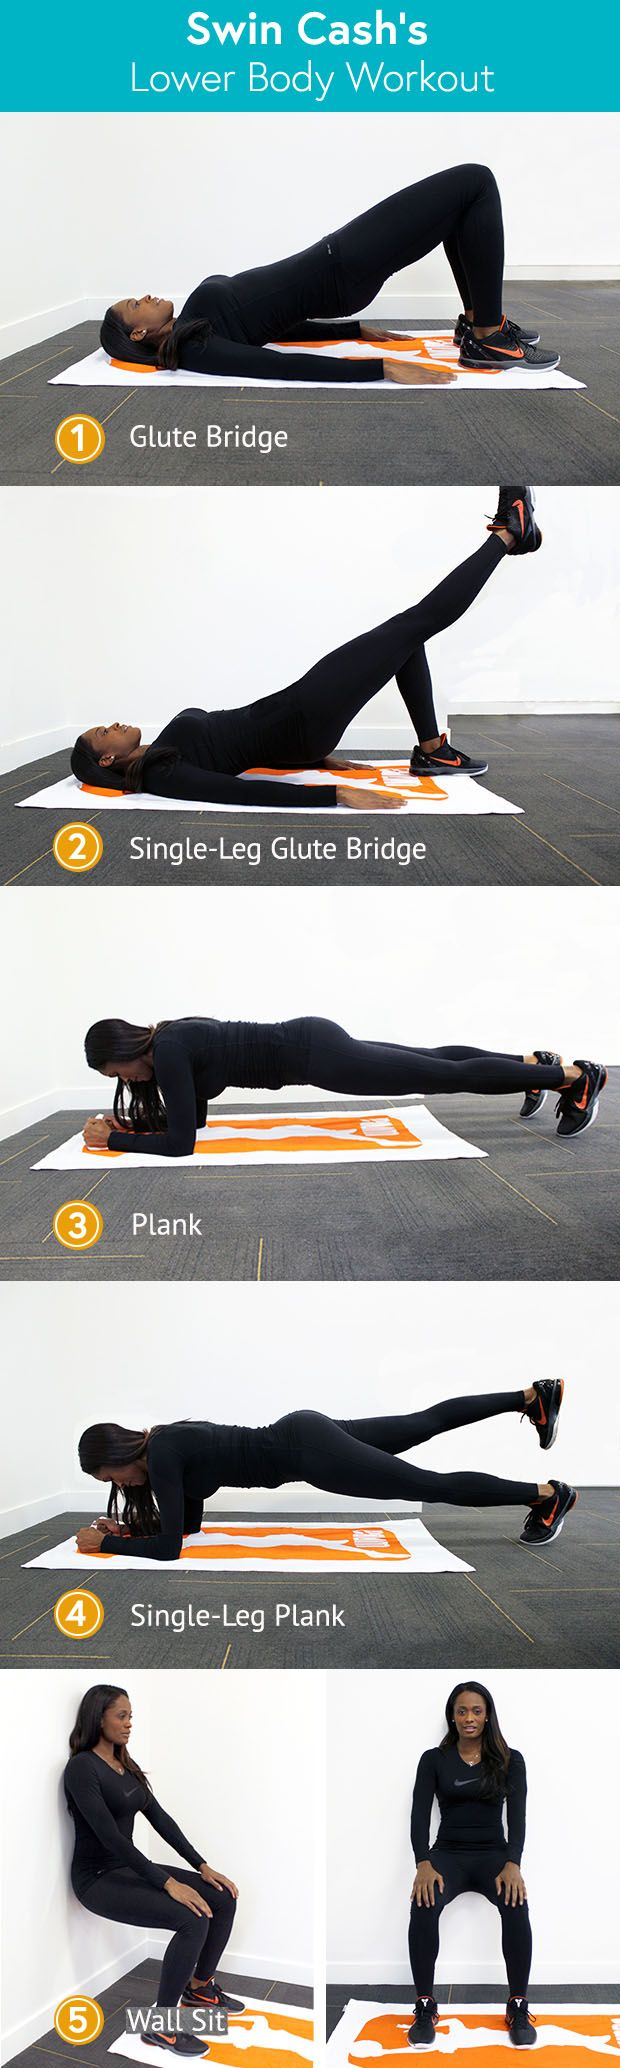 WNBA Swin Cash's favorite lower-body workout